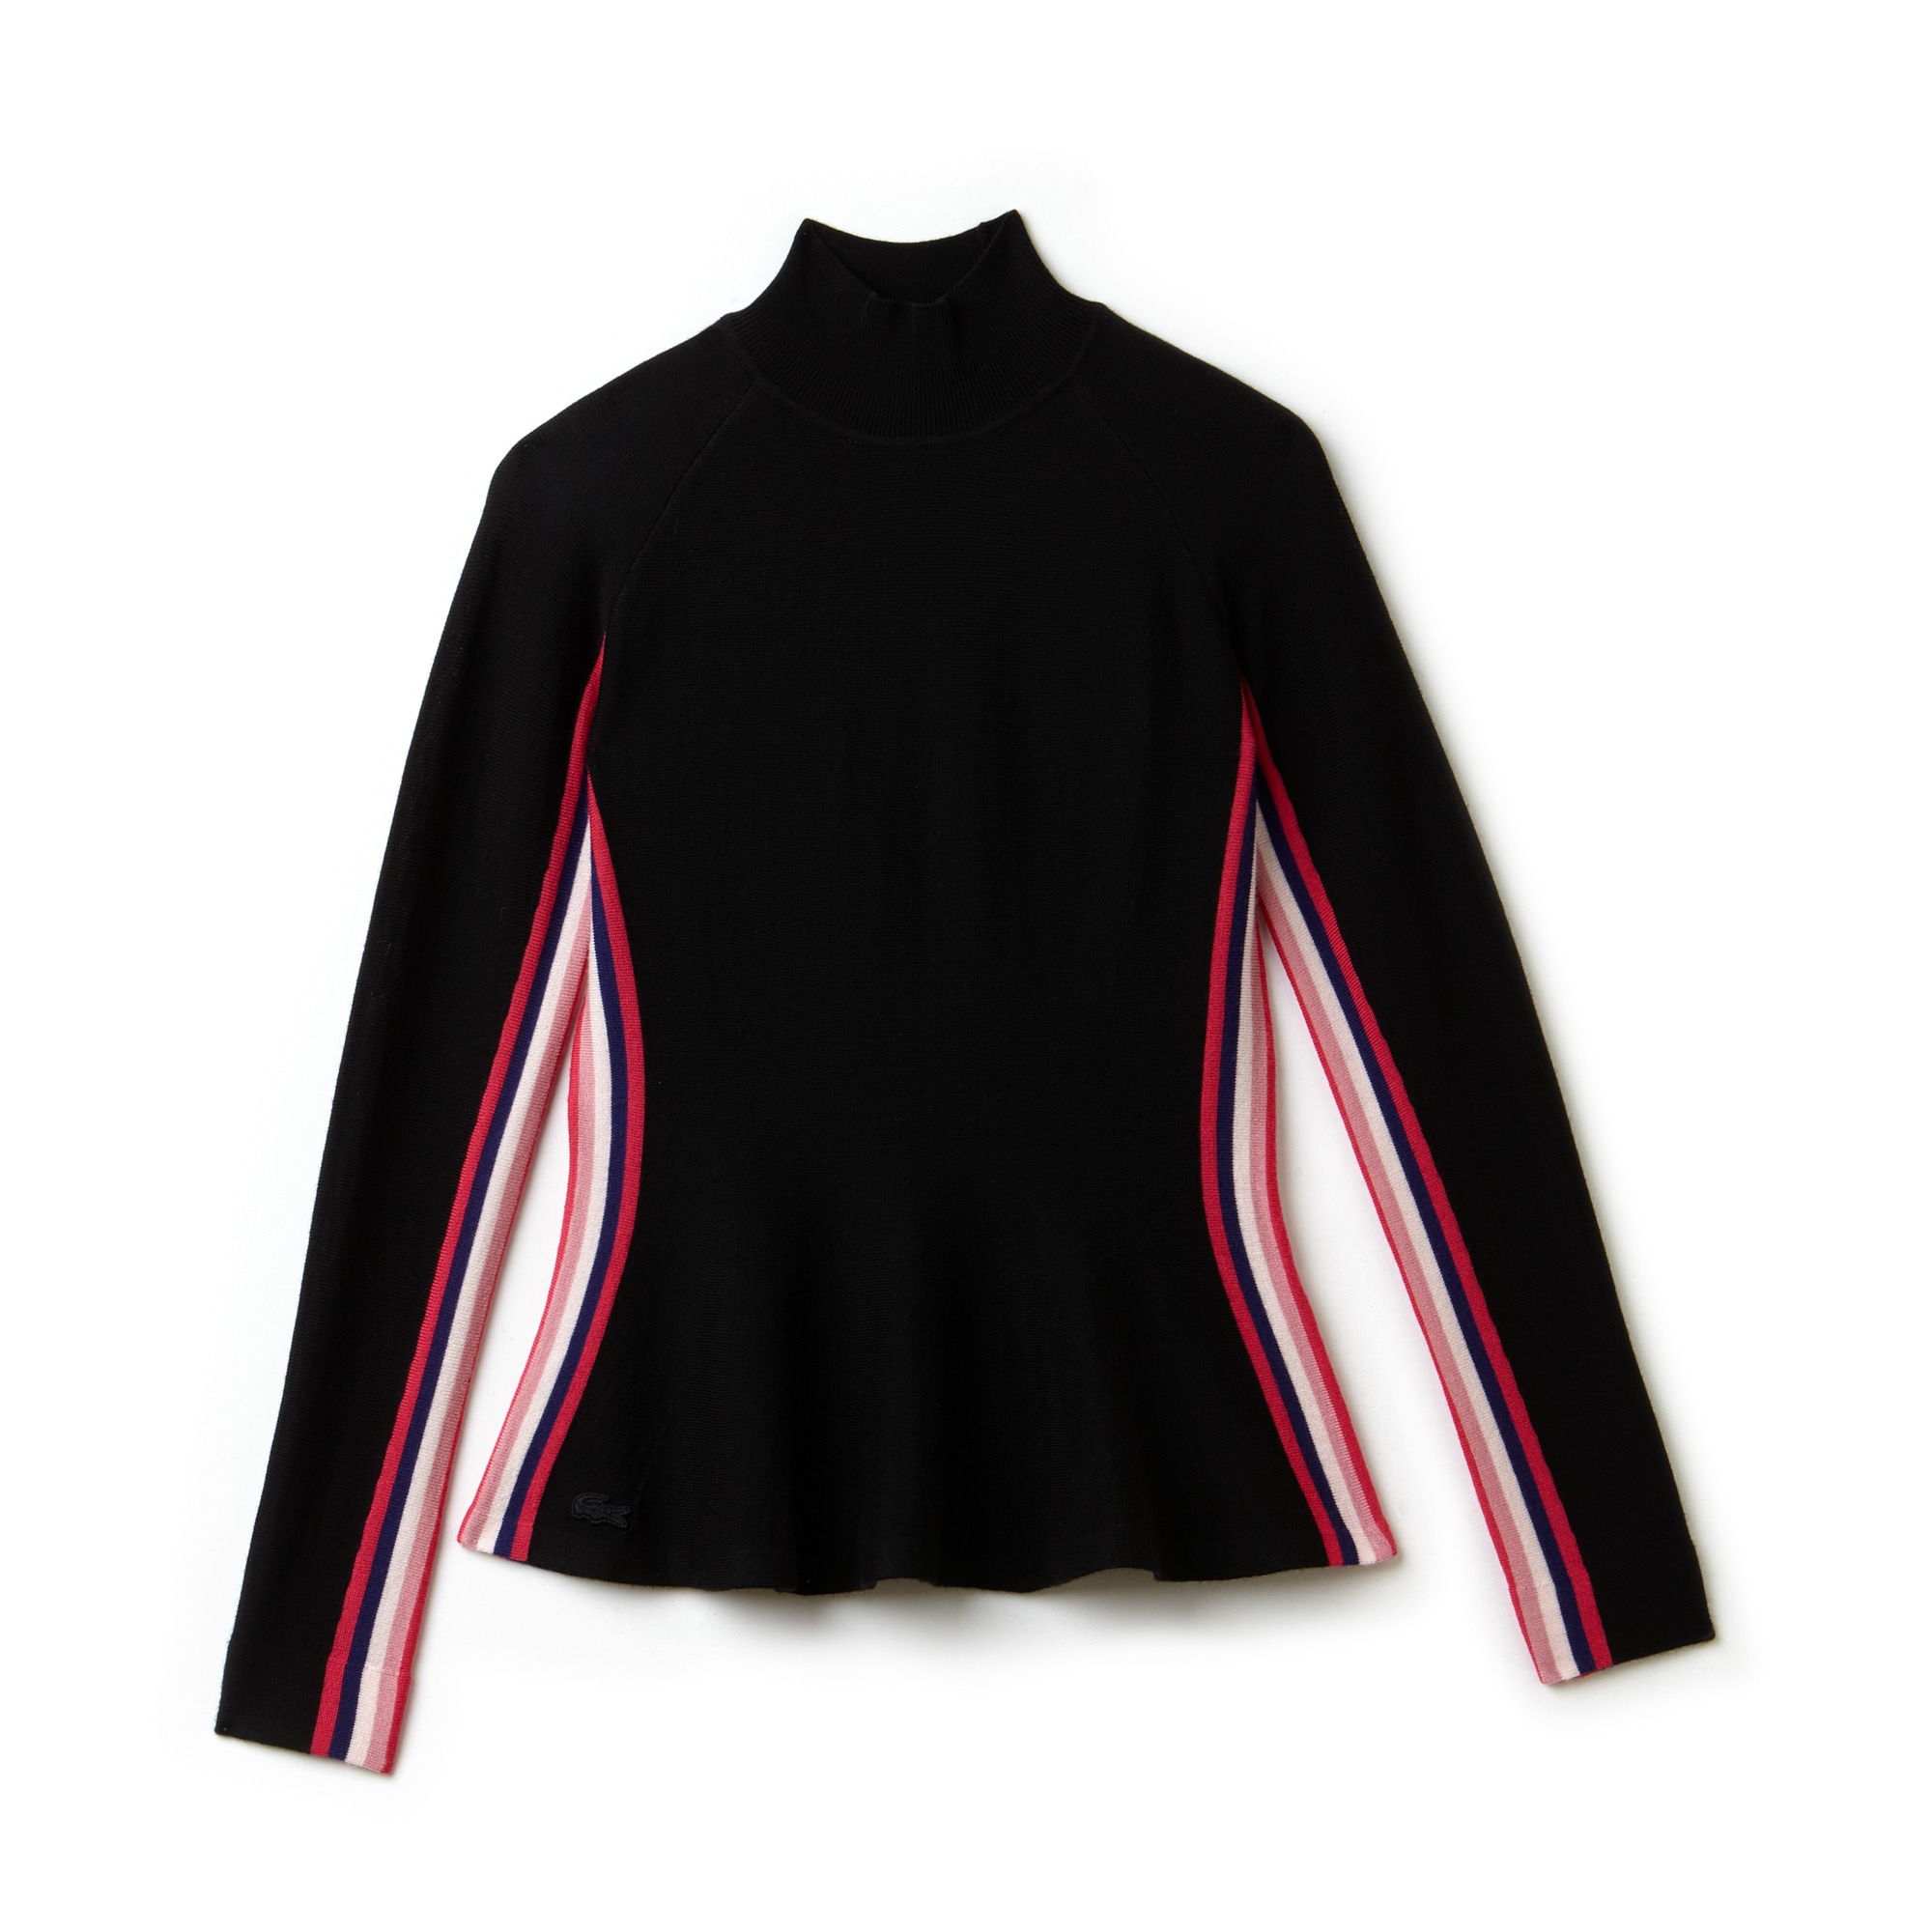 Women's Stand-Up Collar Wool Jersey Peplum Colored Bands Sweater